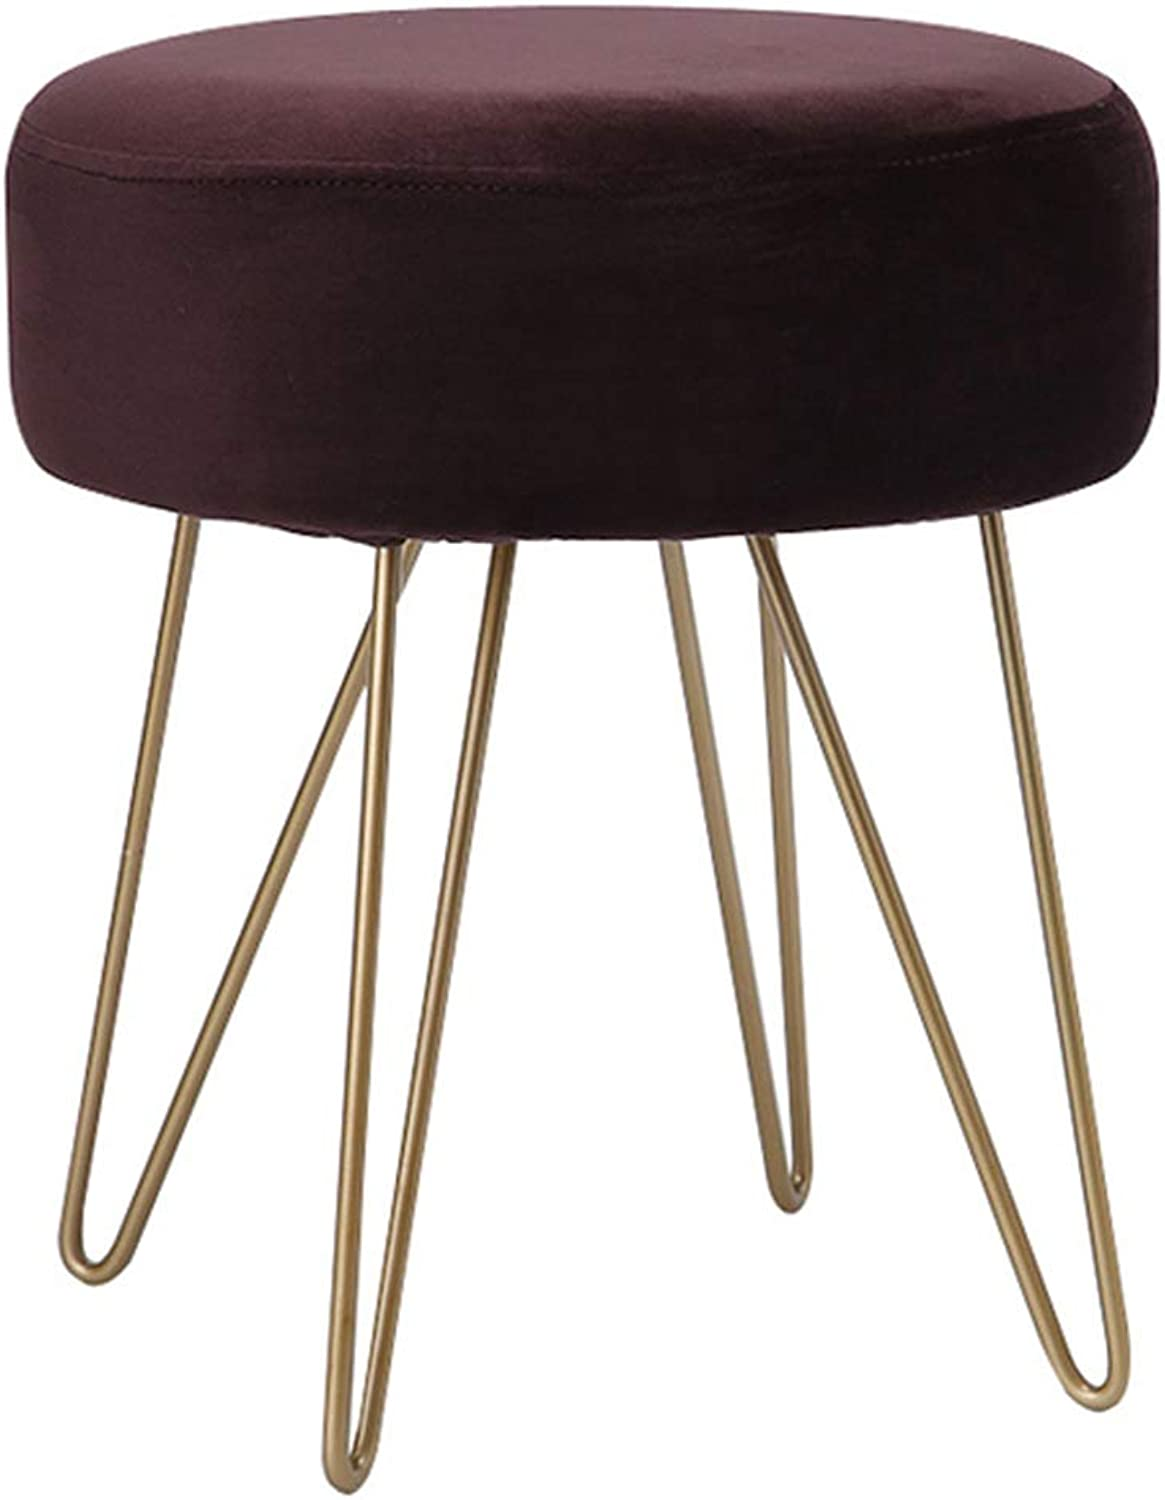 Chair Iron Art Dressing Stool Creative Low Stool Home Environmental Predection Change shoes Footstool Bedroom Dressing Table Sofa Stool Metal Multifunction Stool,Brown